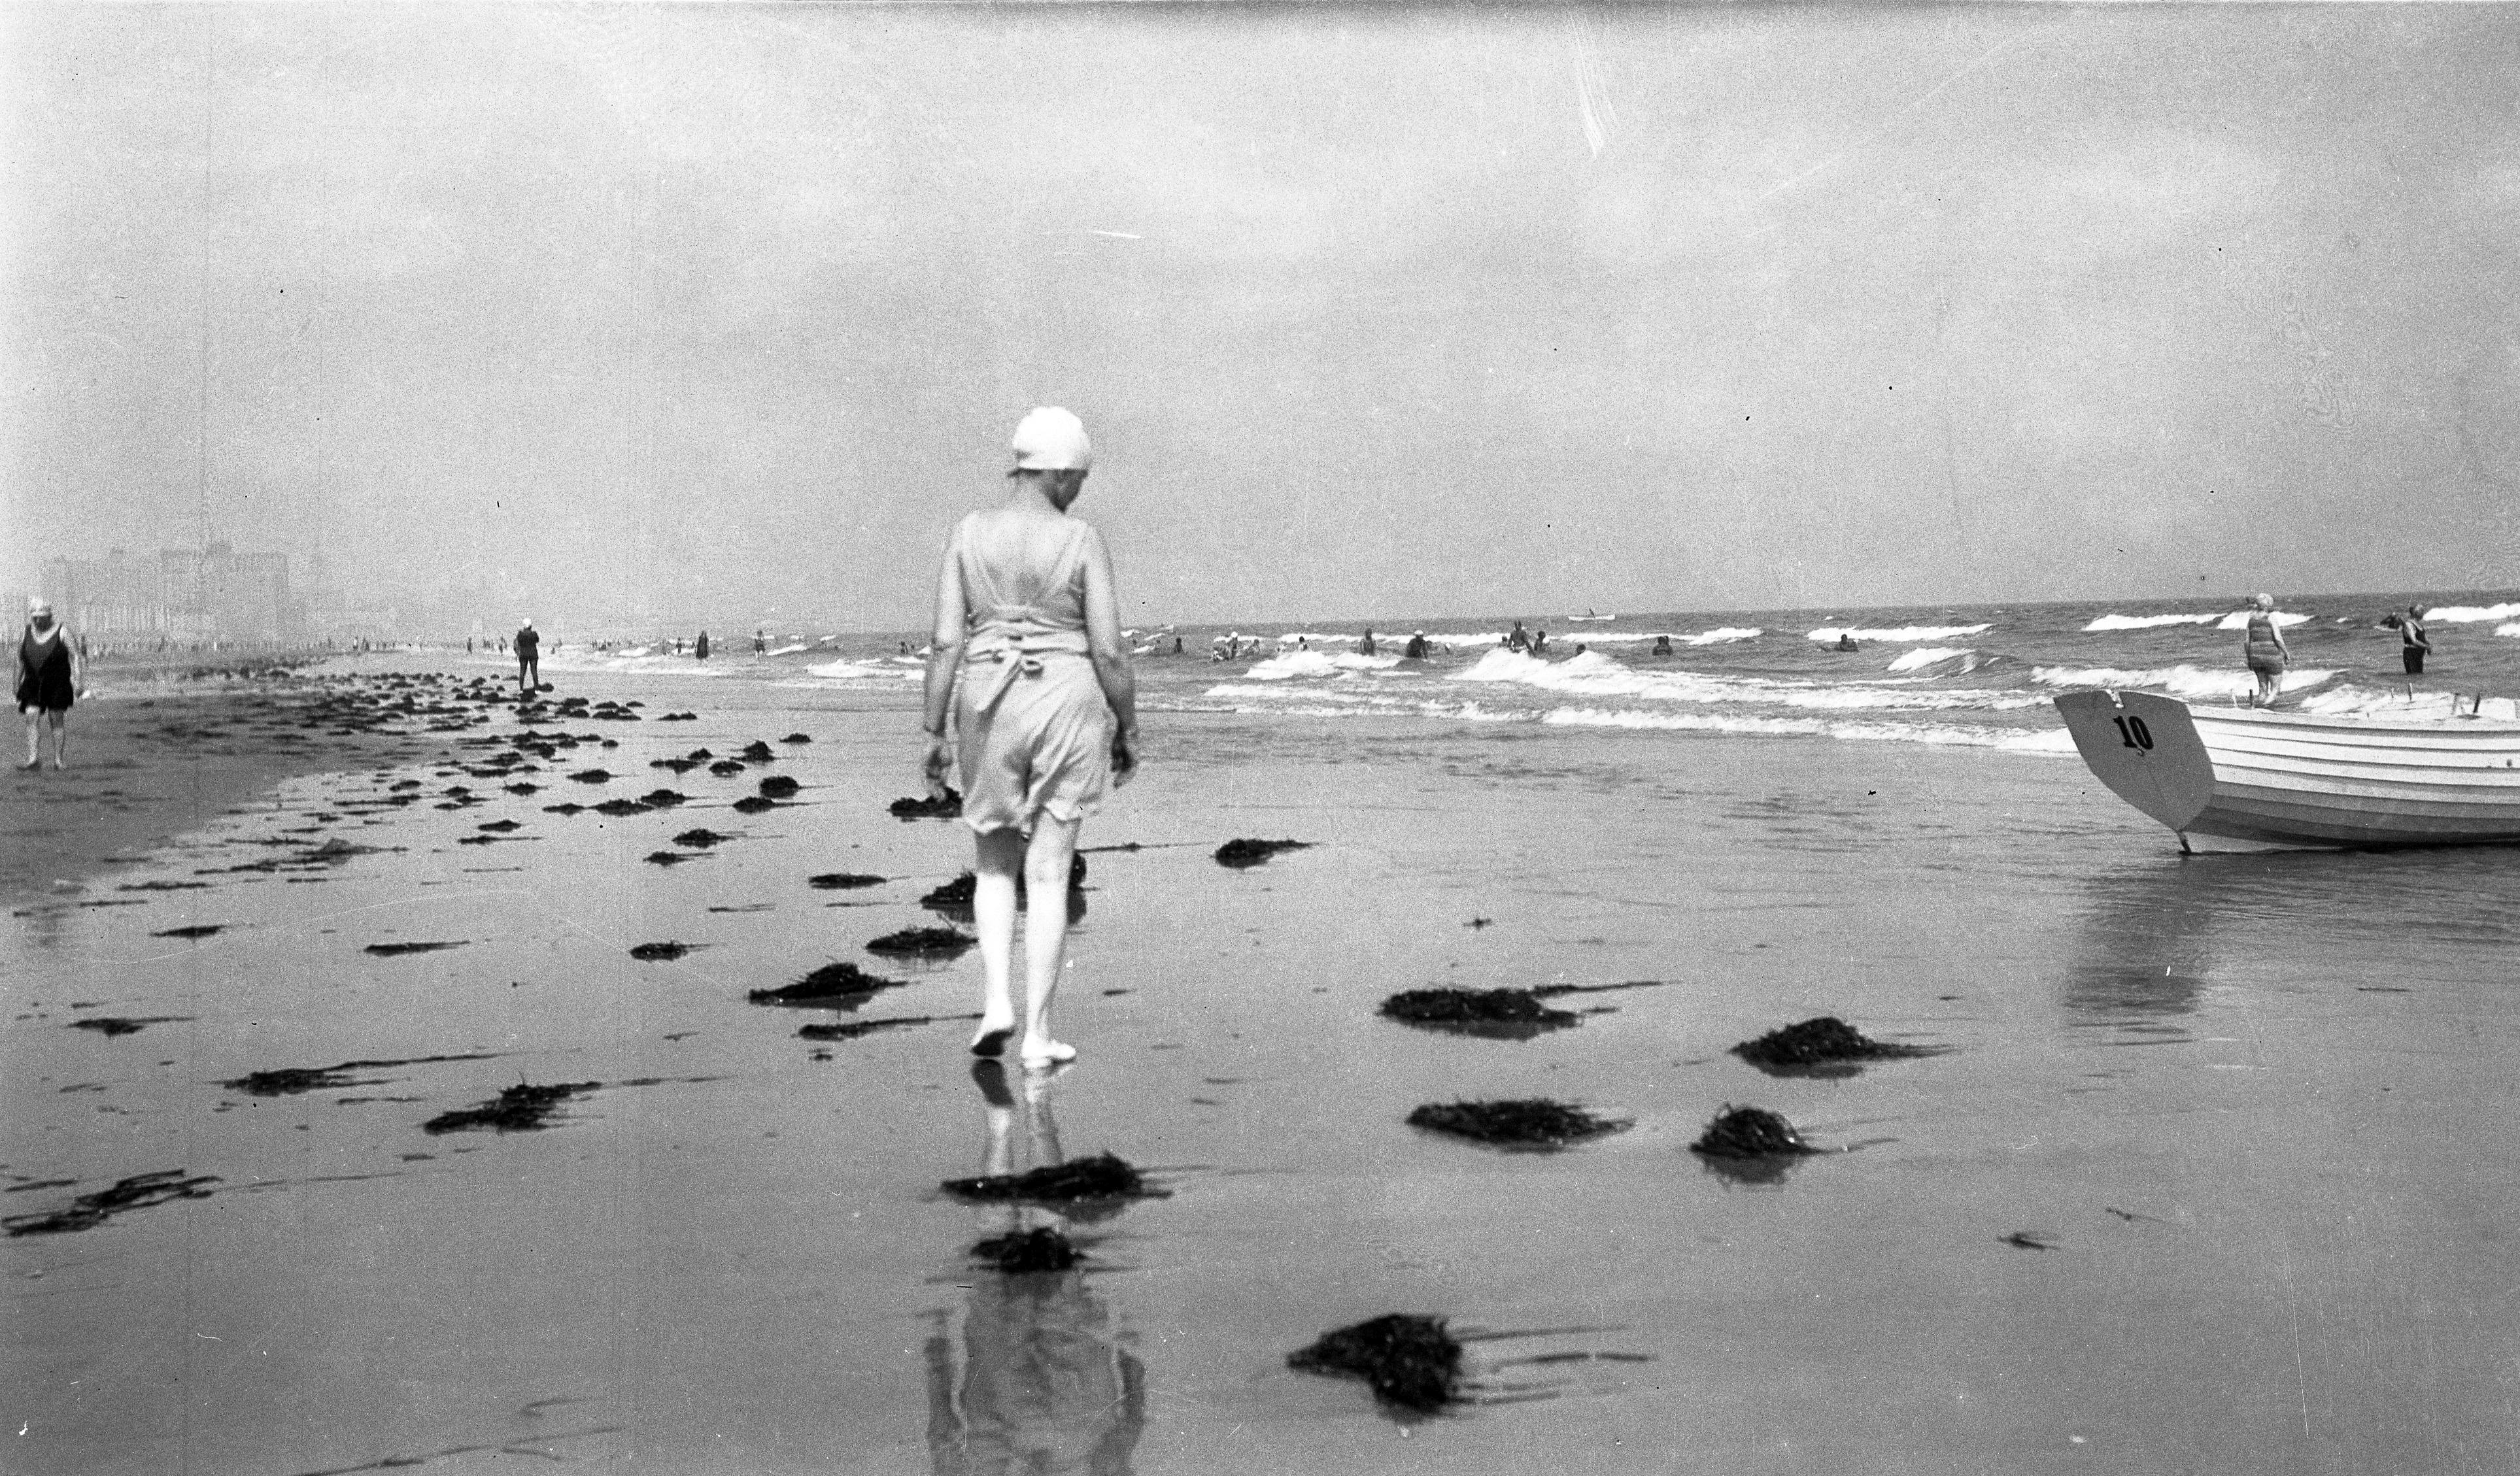 Black and white image of a woman walking on beach with back to camera at Ventnor, New Jersey, or Rehoboth, Delaware